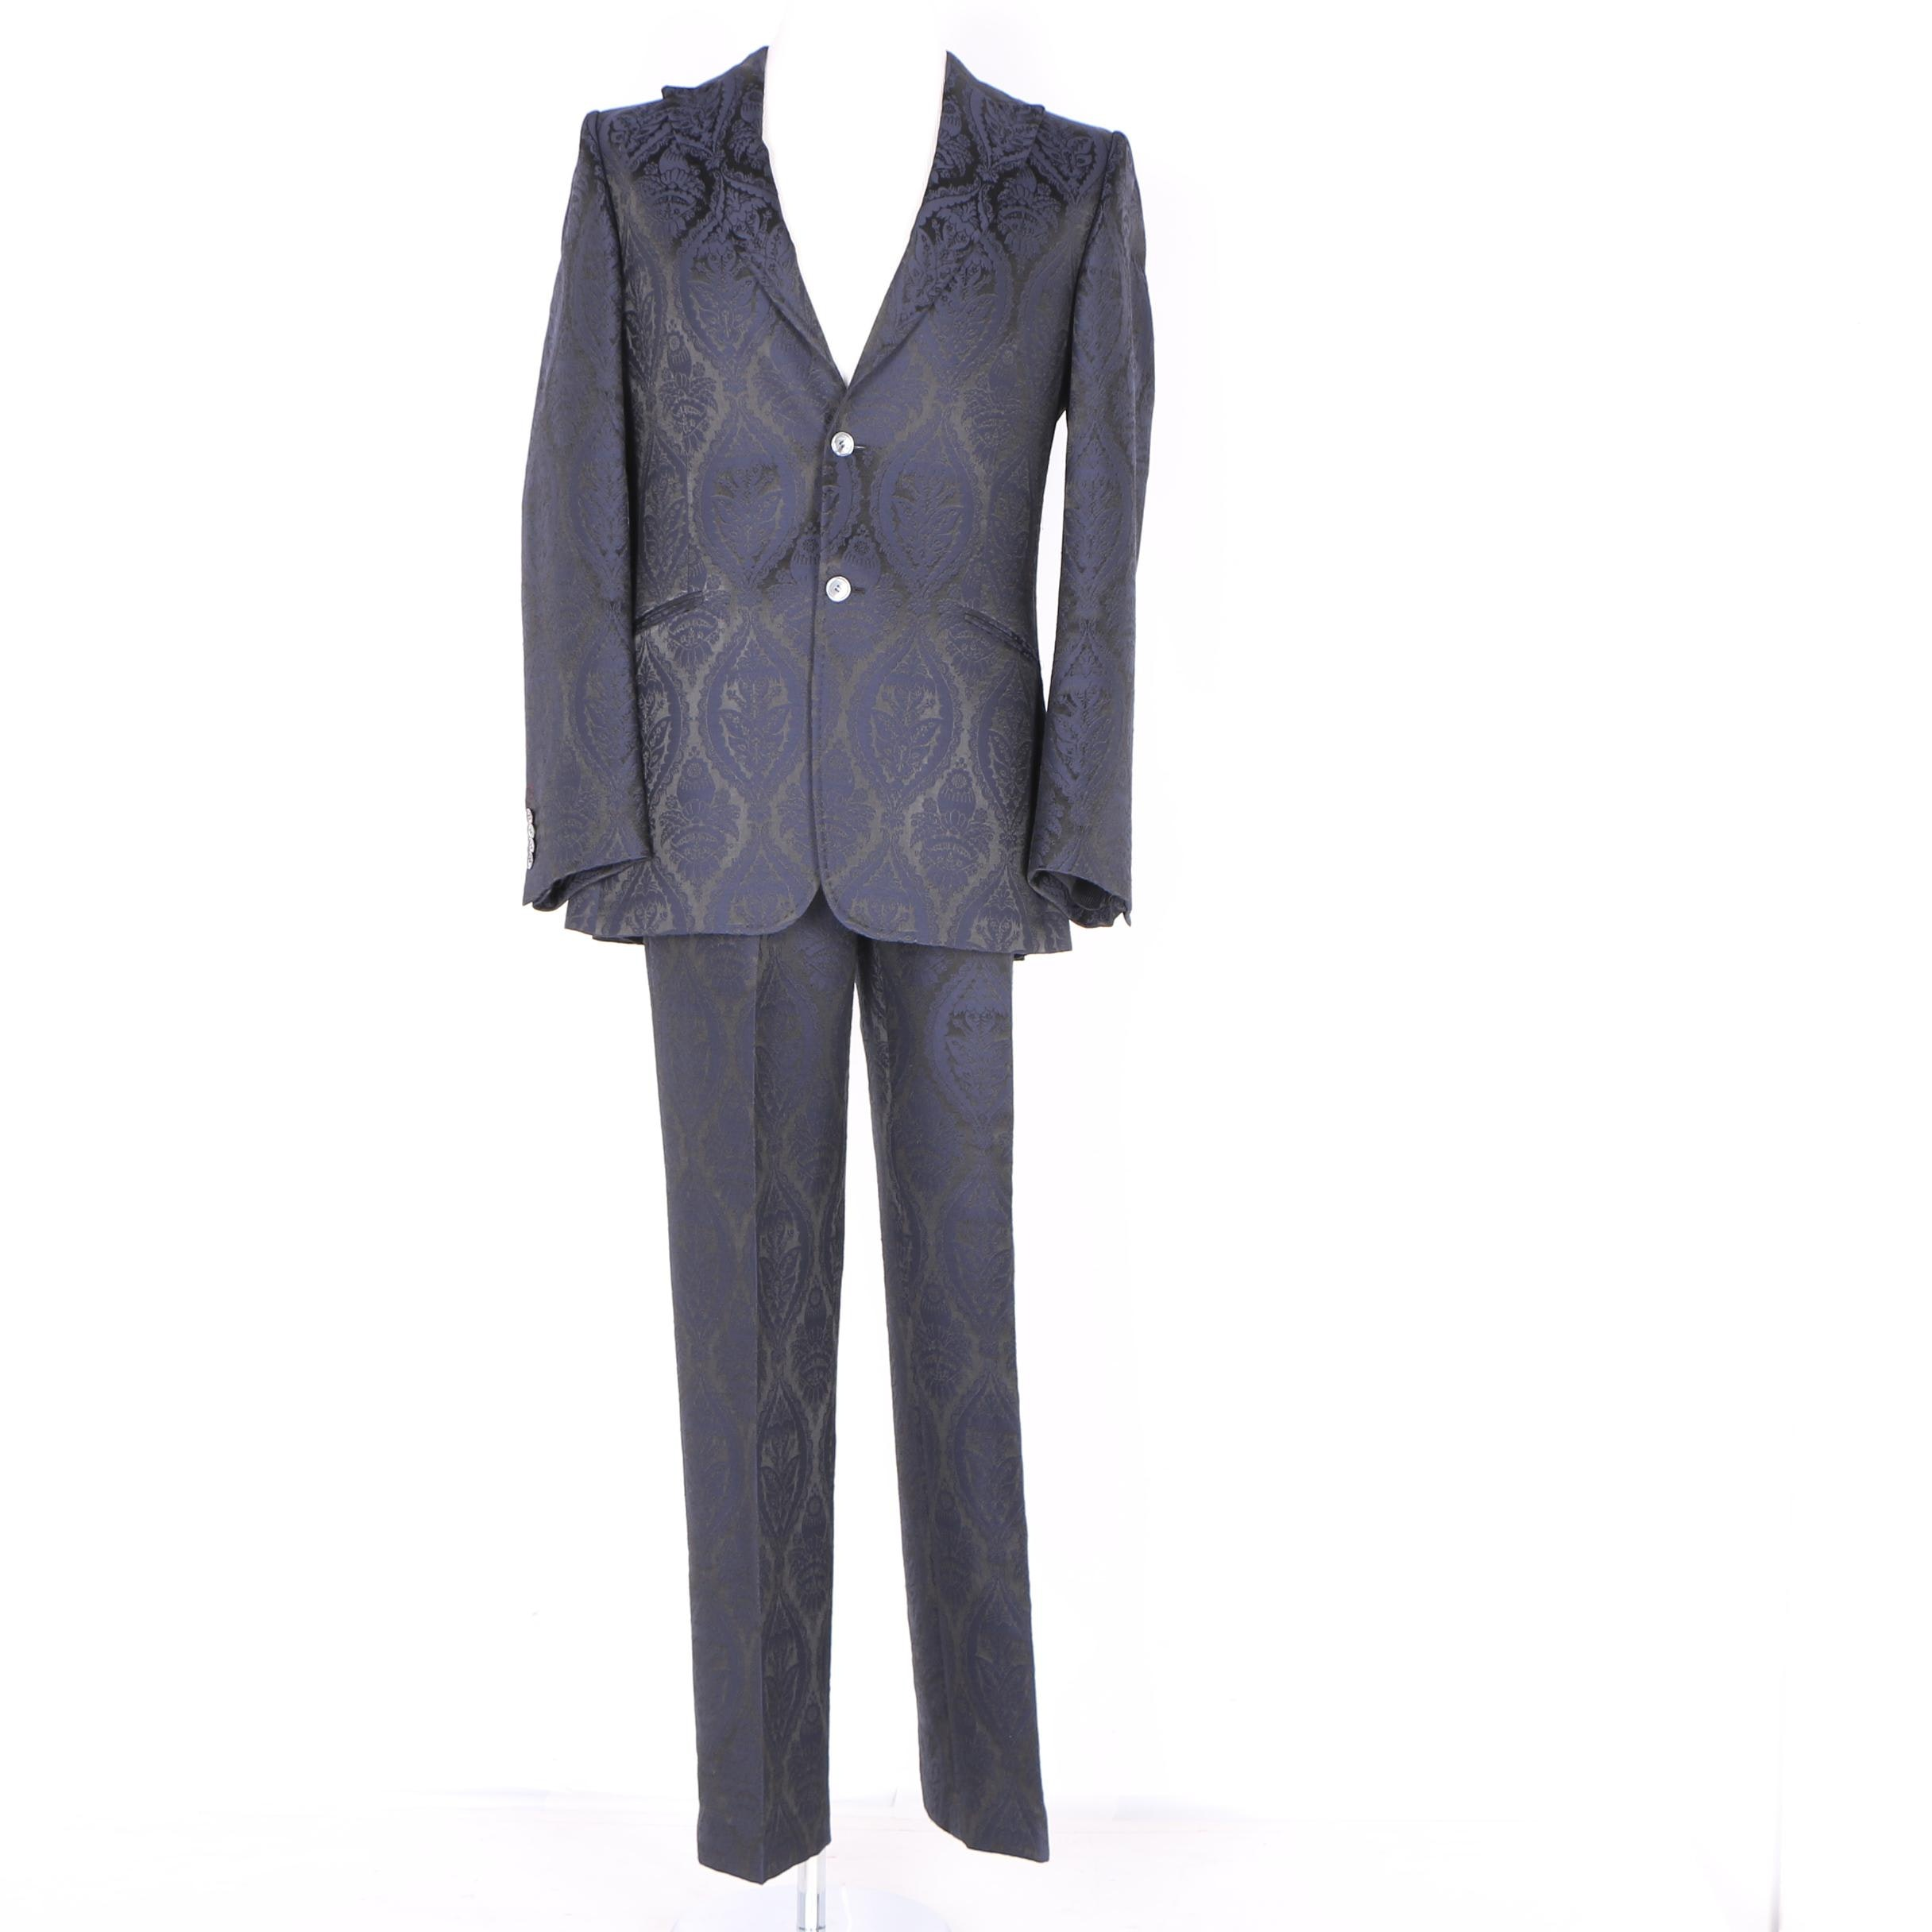 Moschino Demask Print Wool Blend Suit